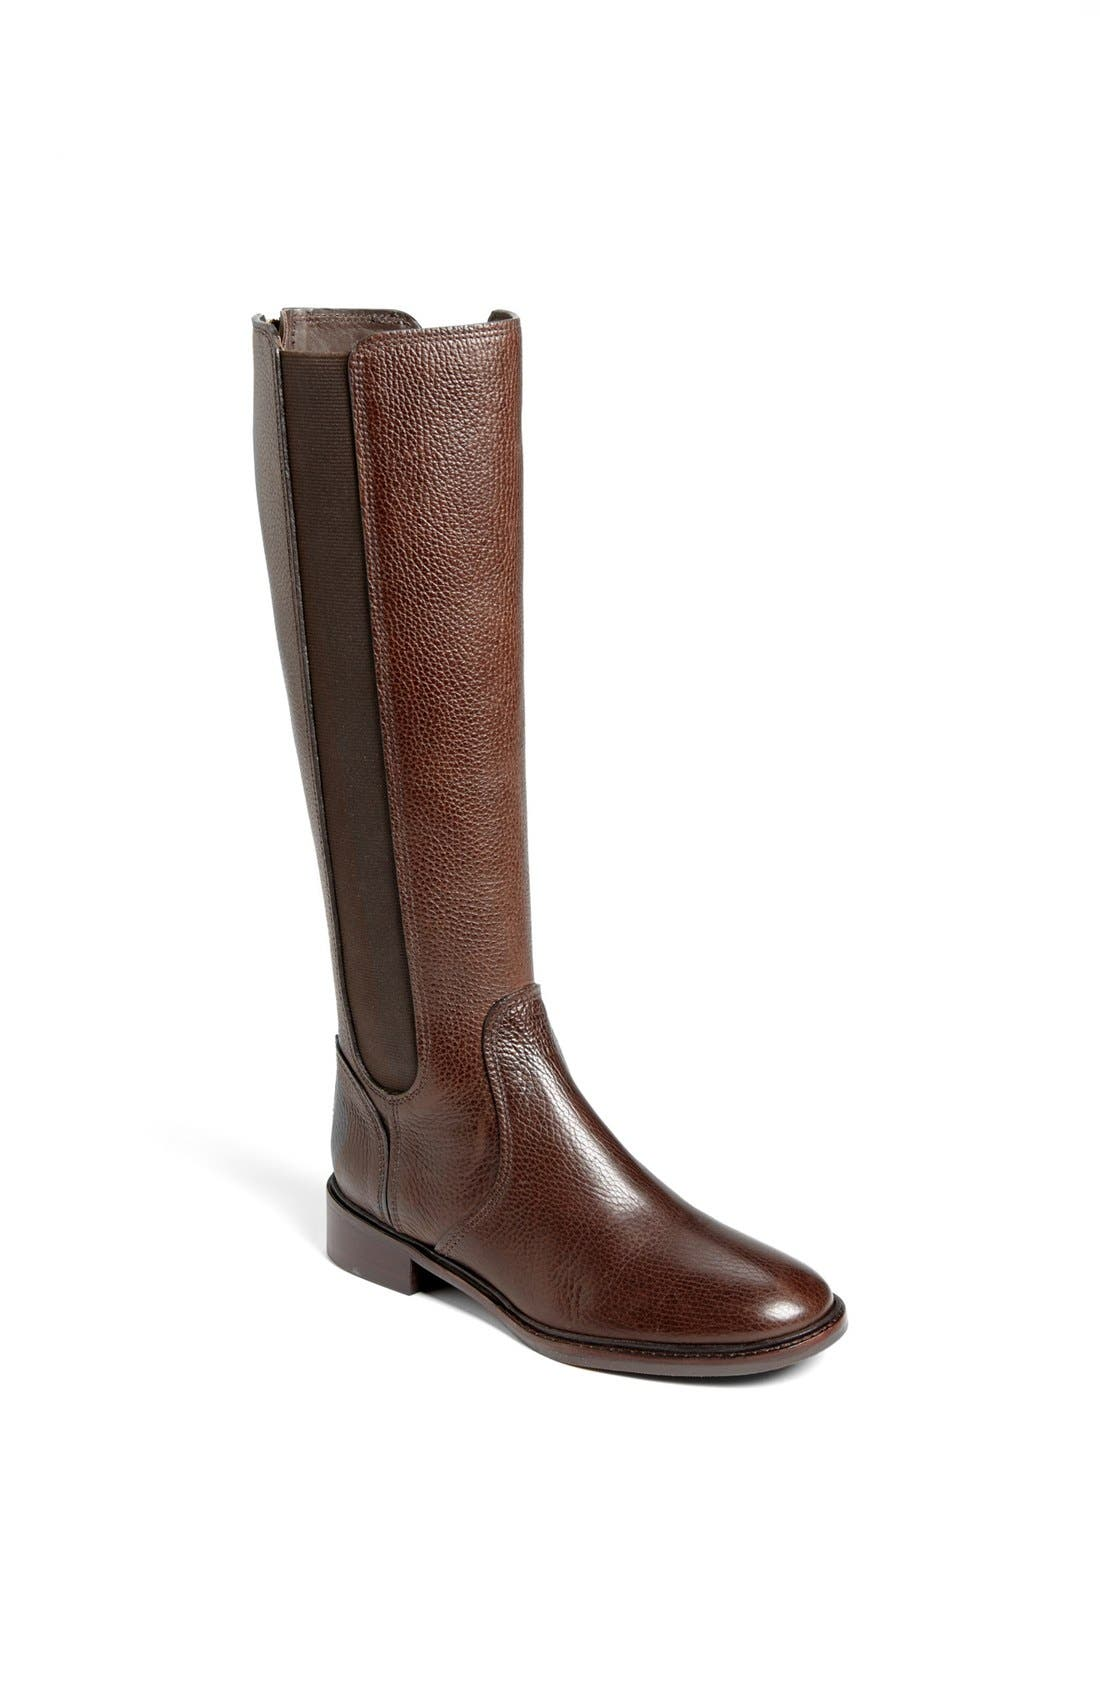 Main Image - Tory Burch 'Christy' Leather Riding Boot